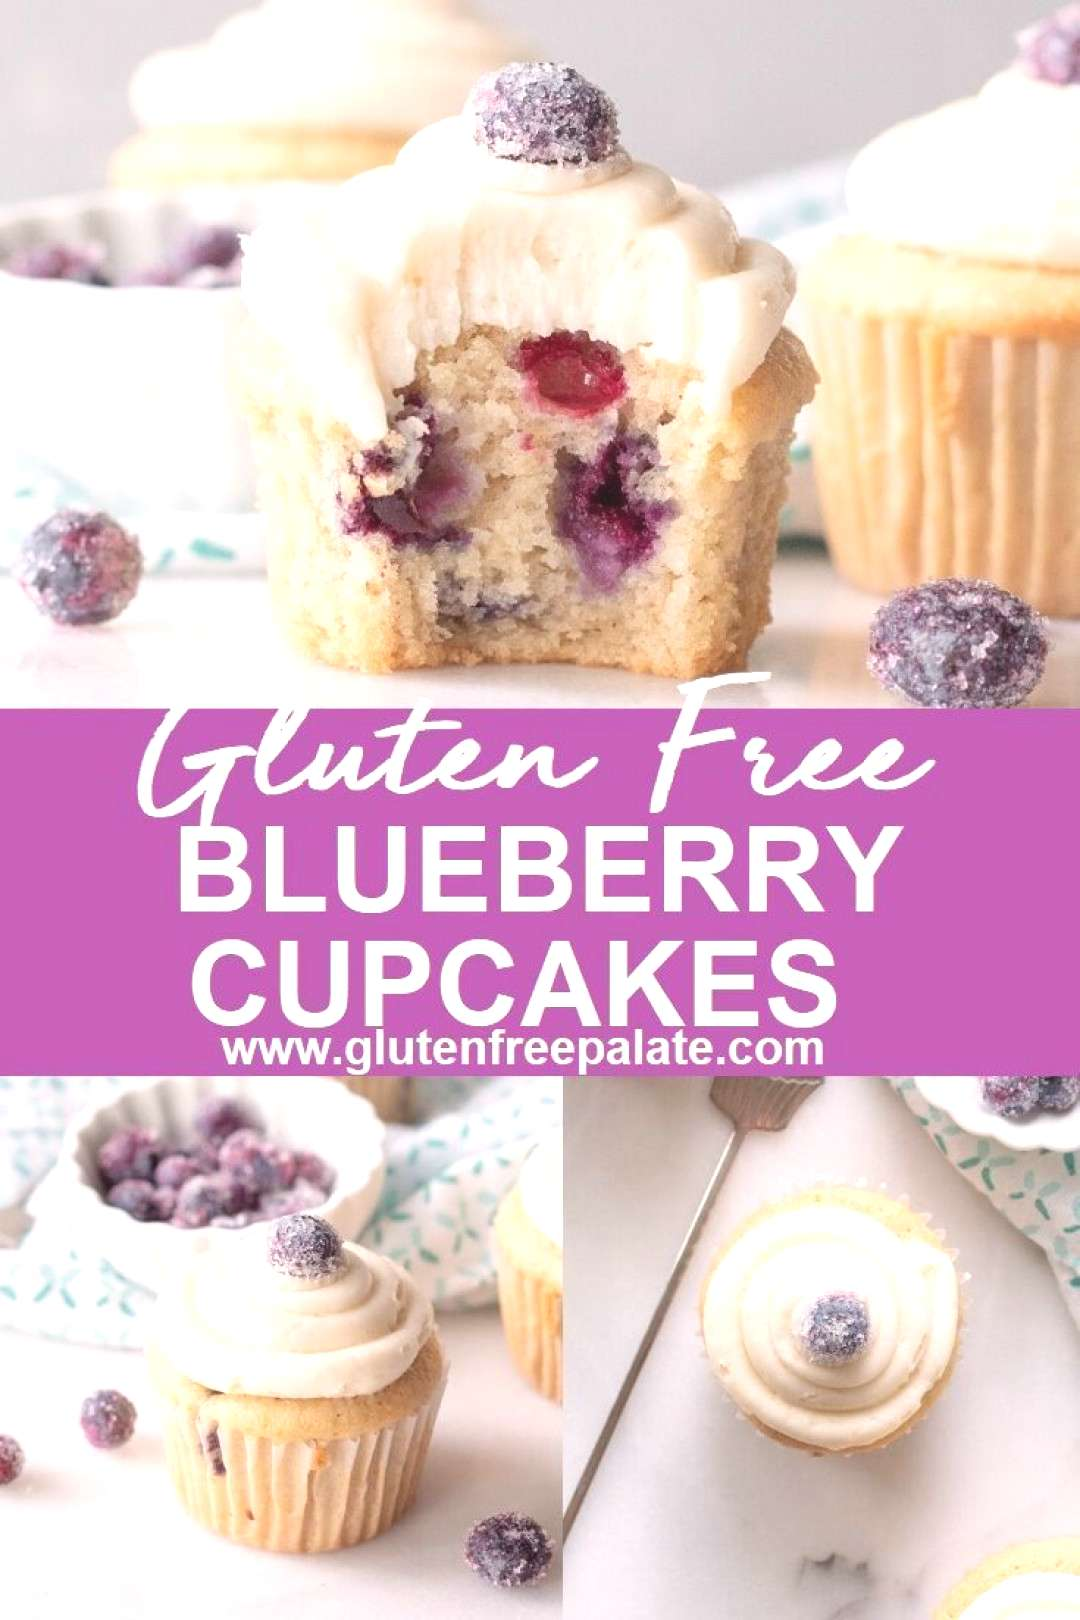 Gluten-Free Blueberry Cupcakes -   -